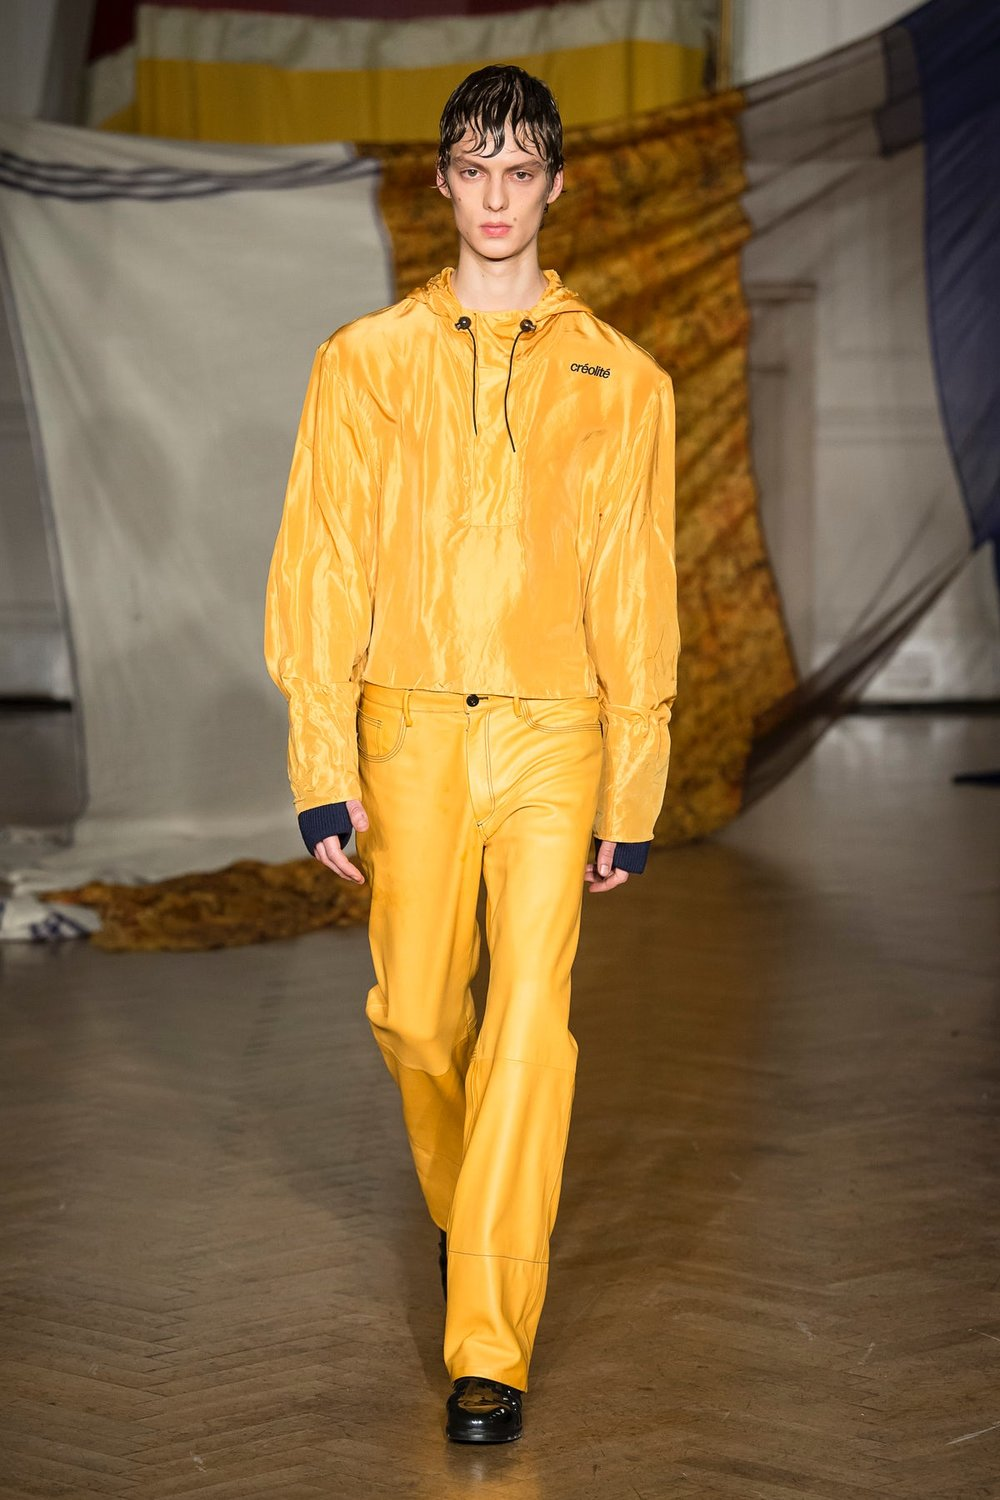 wales_bonner_look_7_menswear_autumn_2018.jpeg